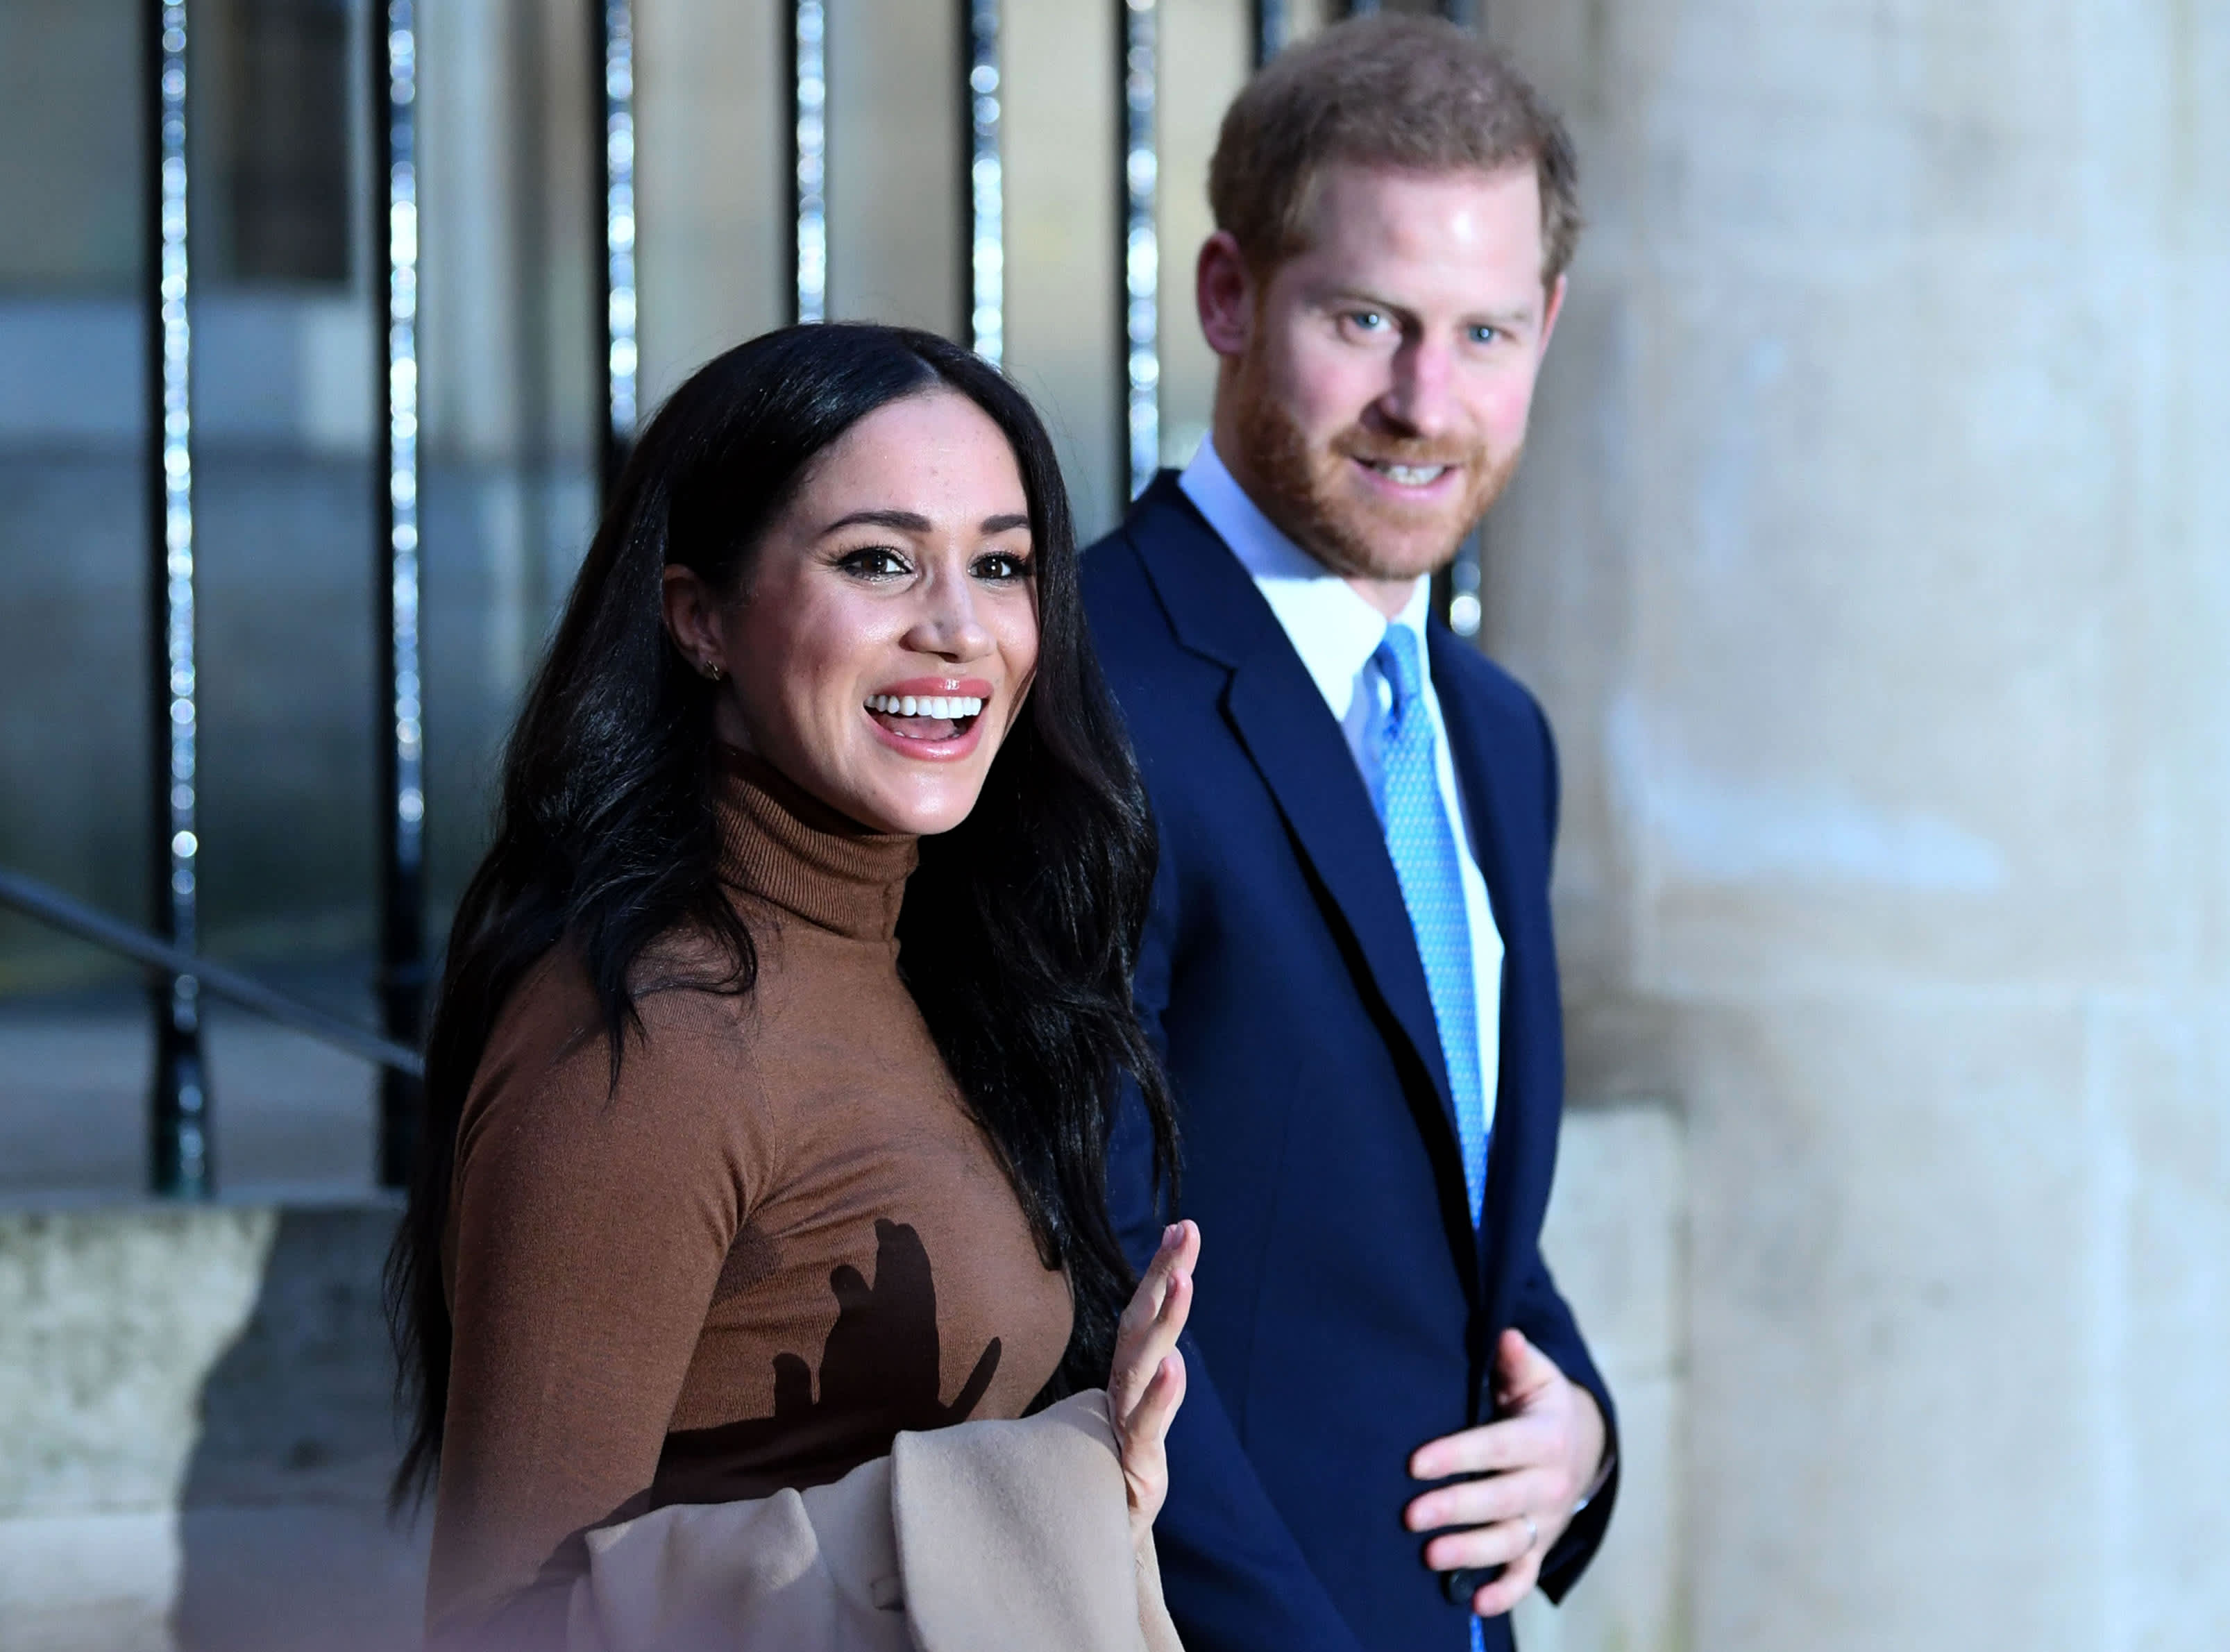 Trump says US won't cover Prince Harry and Meghan Markle's security costs